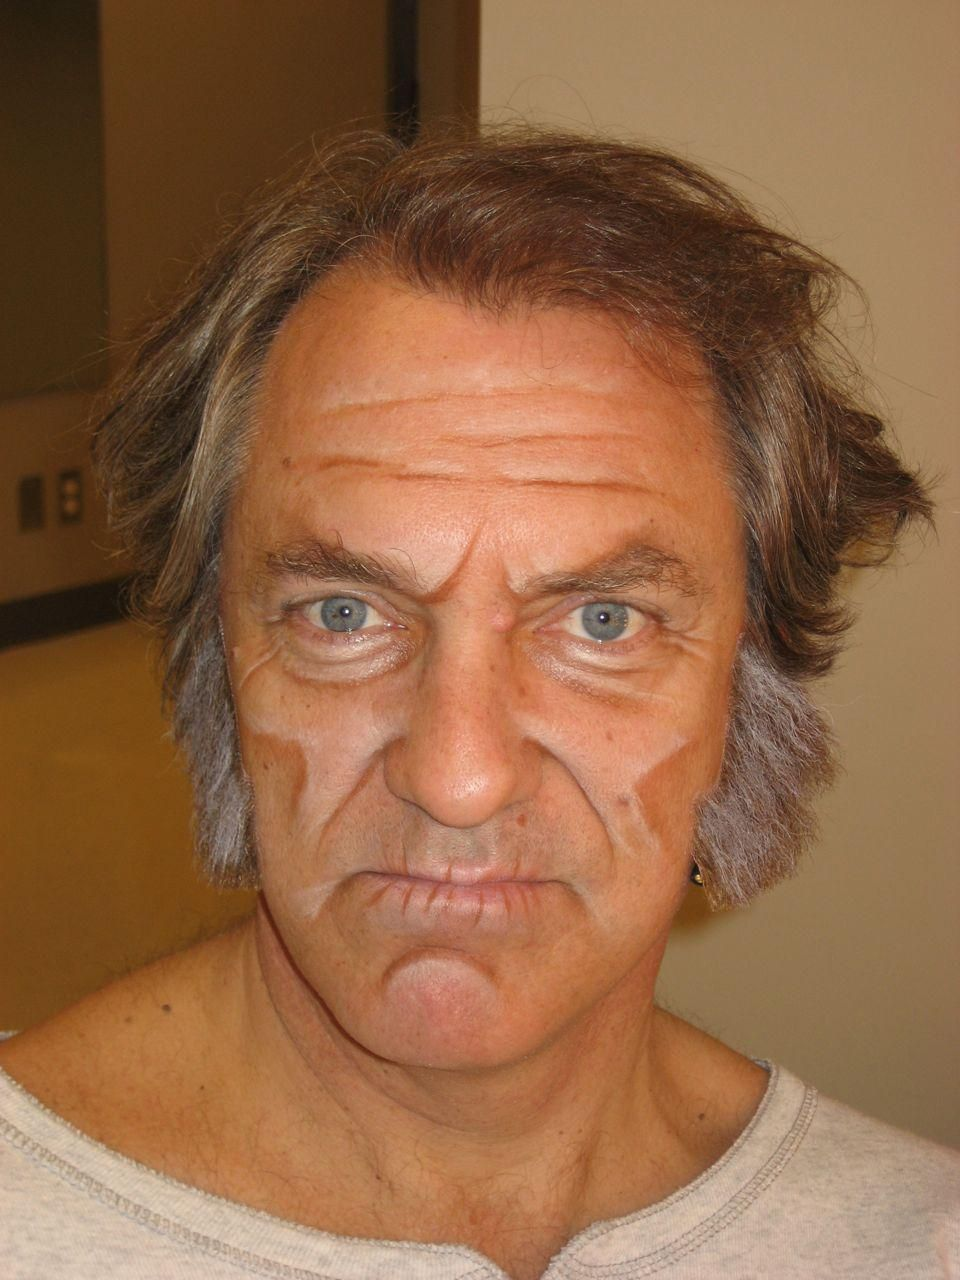 A Christmas Carol makeup theatrical aging for rose